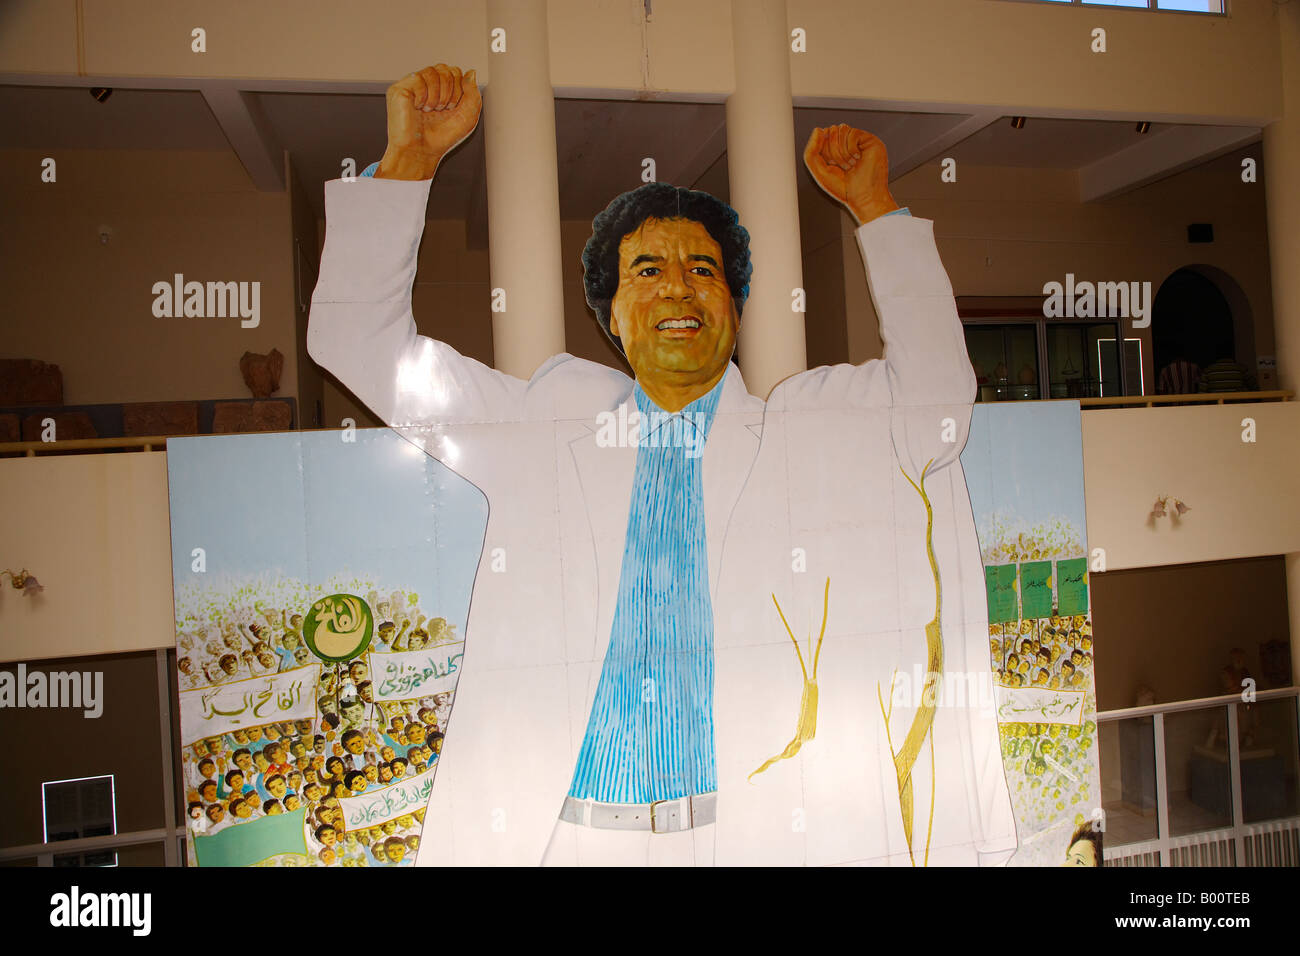 Poster of President Gaddafi in the Museum at Leptis Magna, Libya, North Africa - Stock Image